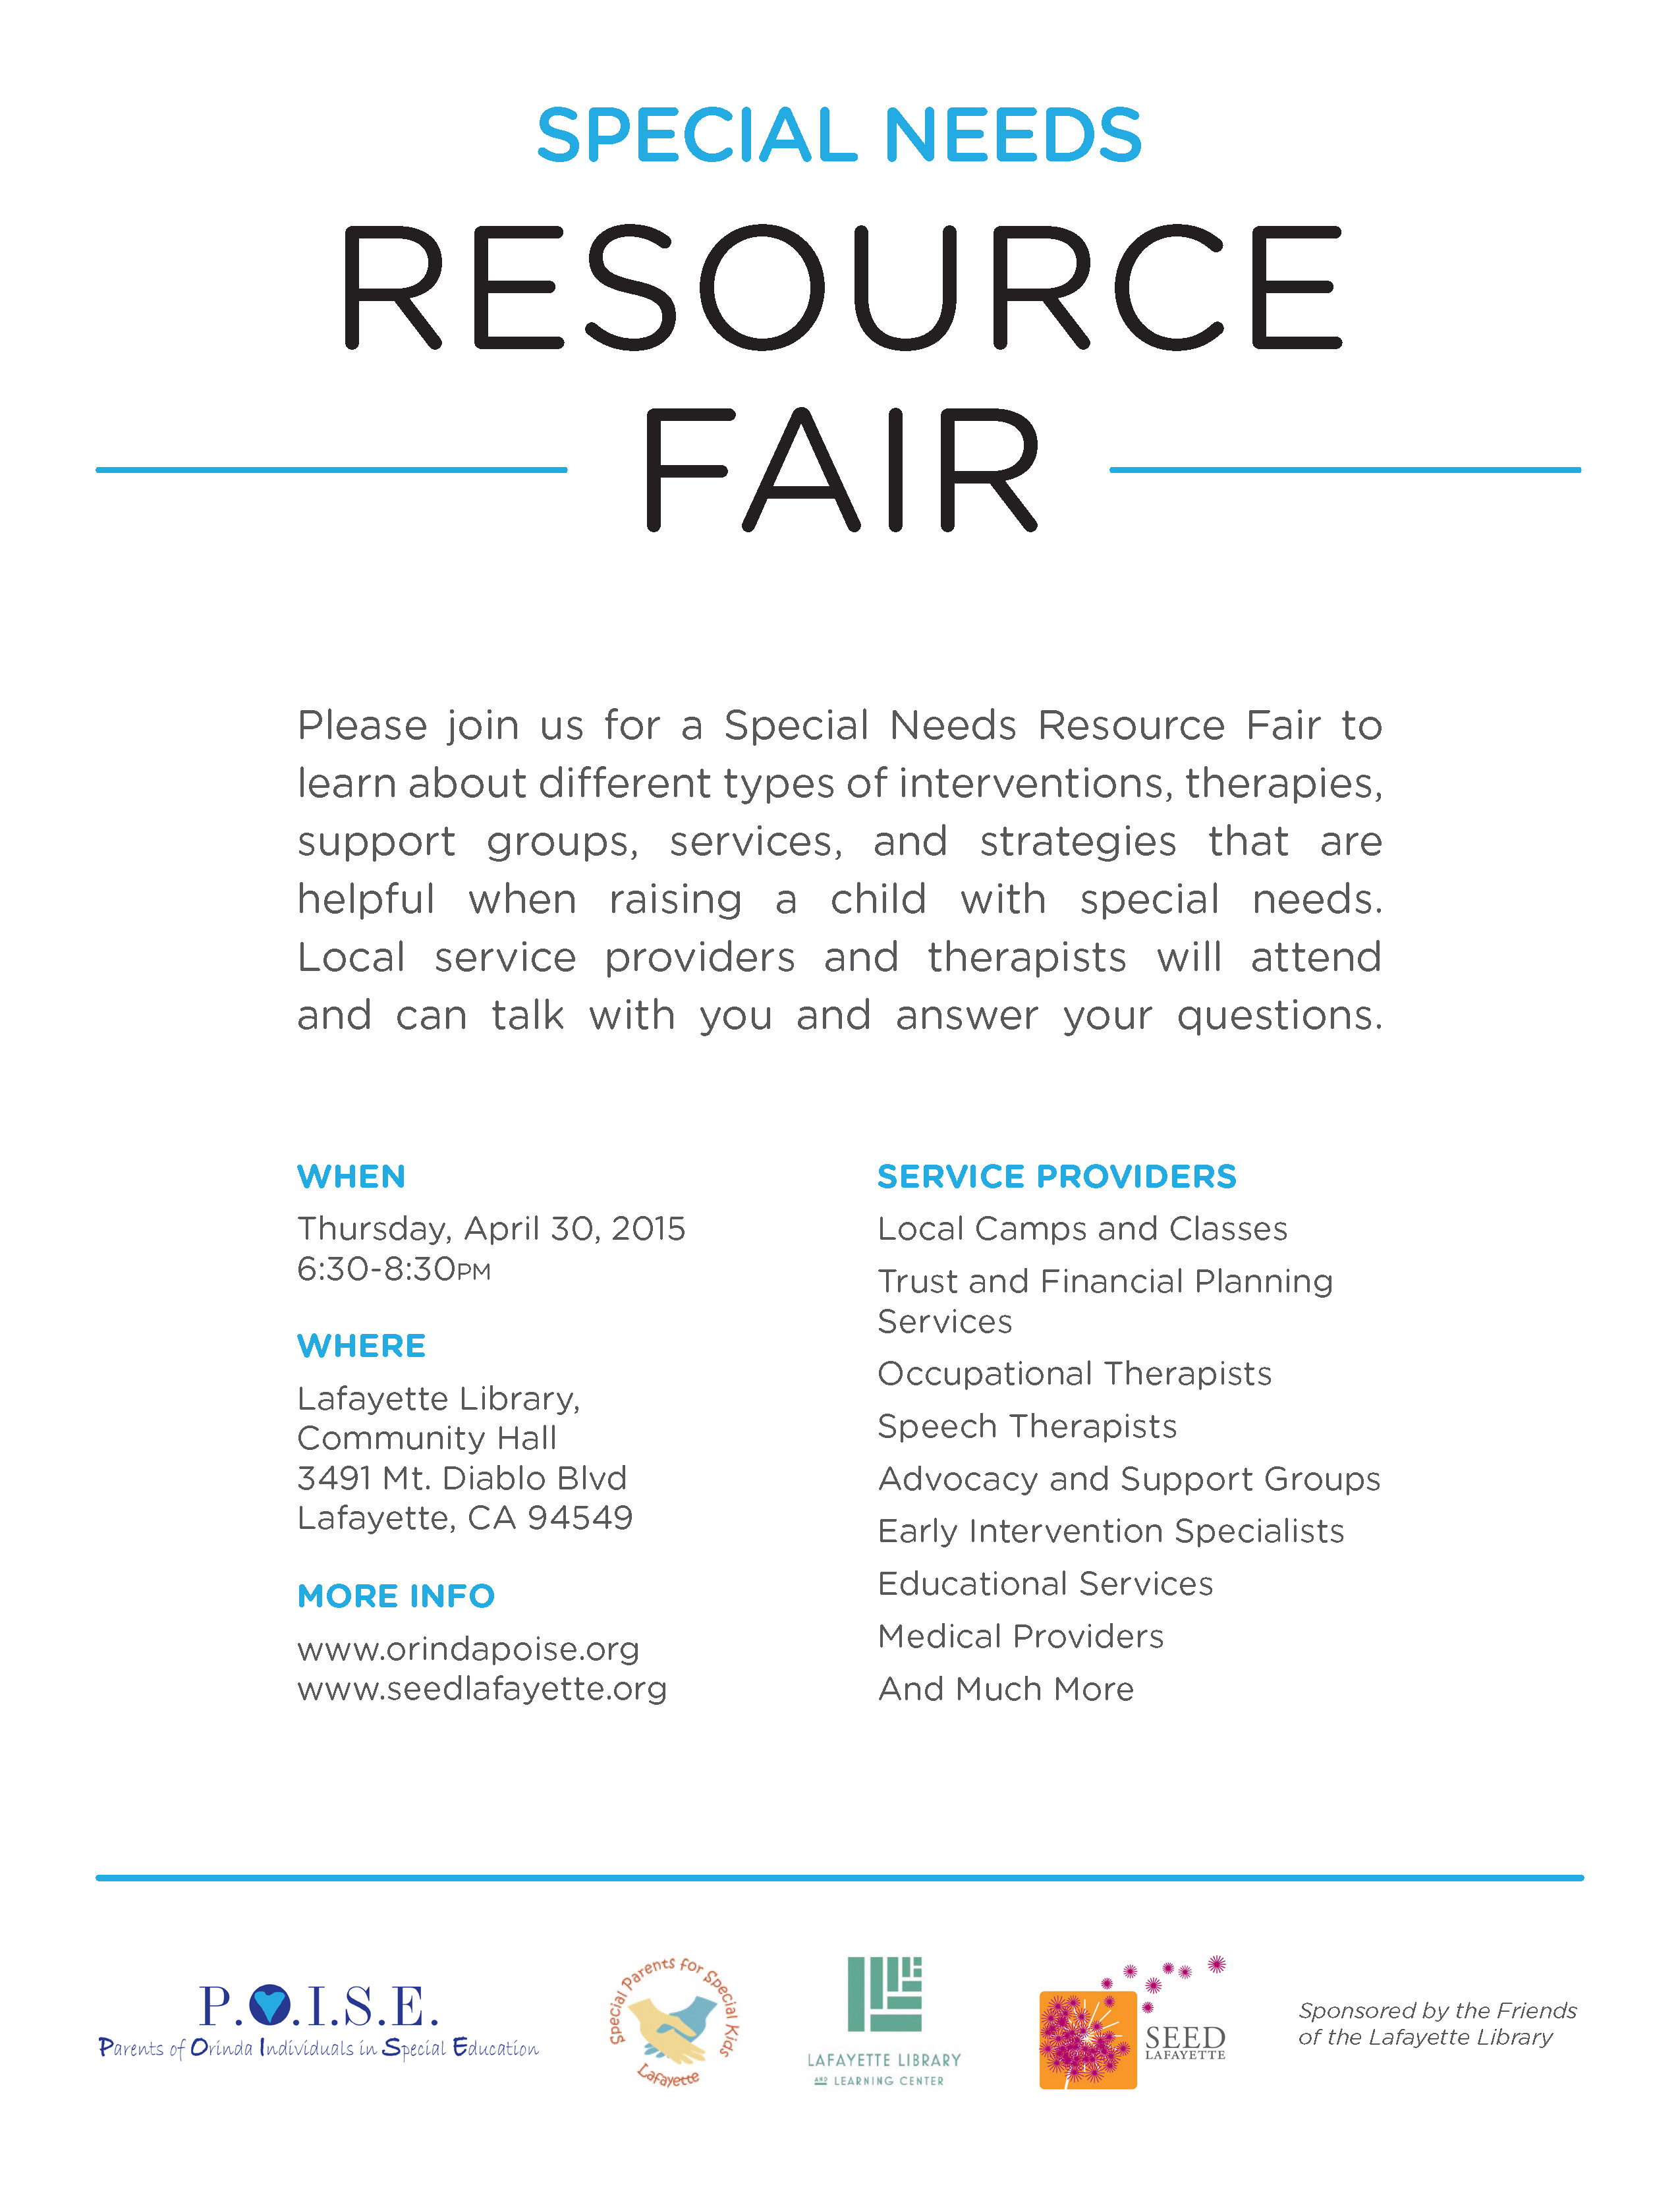 Orinda POISE and SEED Lafayette Resource Fair for Special Needs – 4/30, 6:30pm